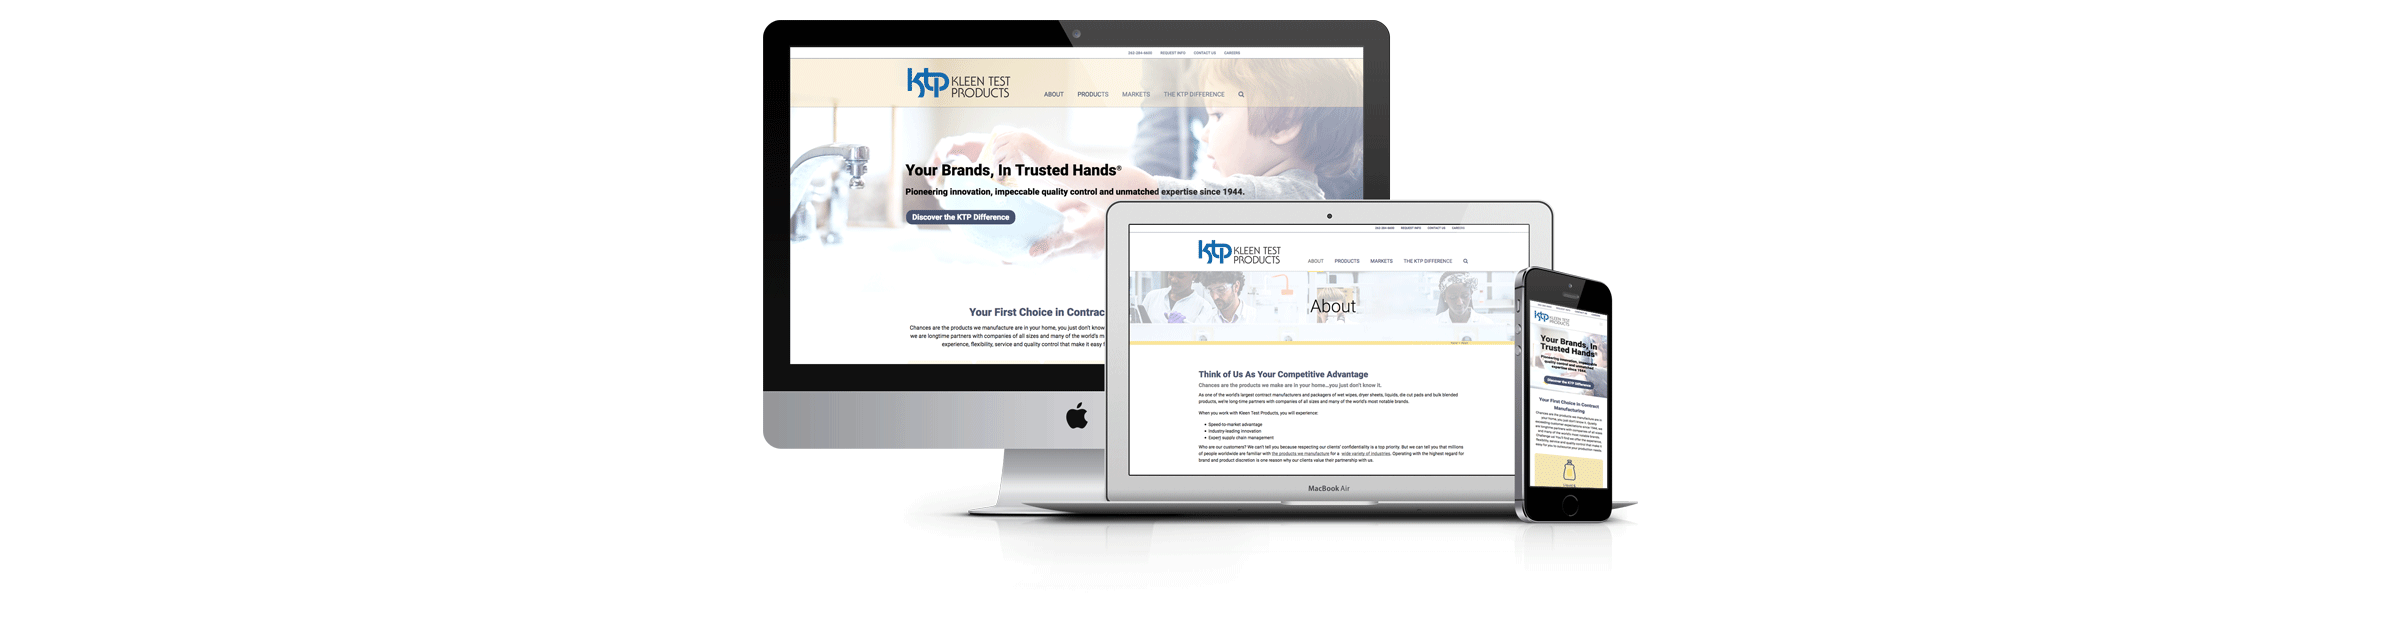 Website Redesign for Kleen Test Products